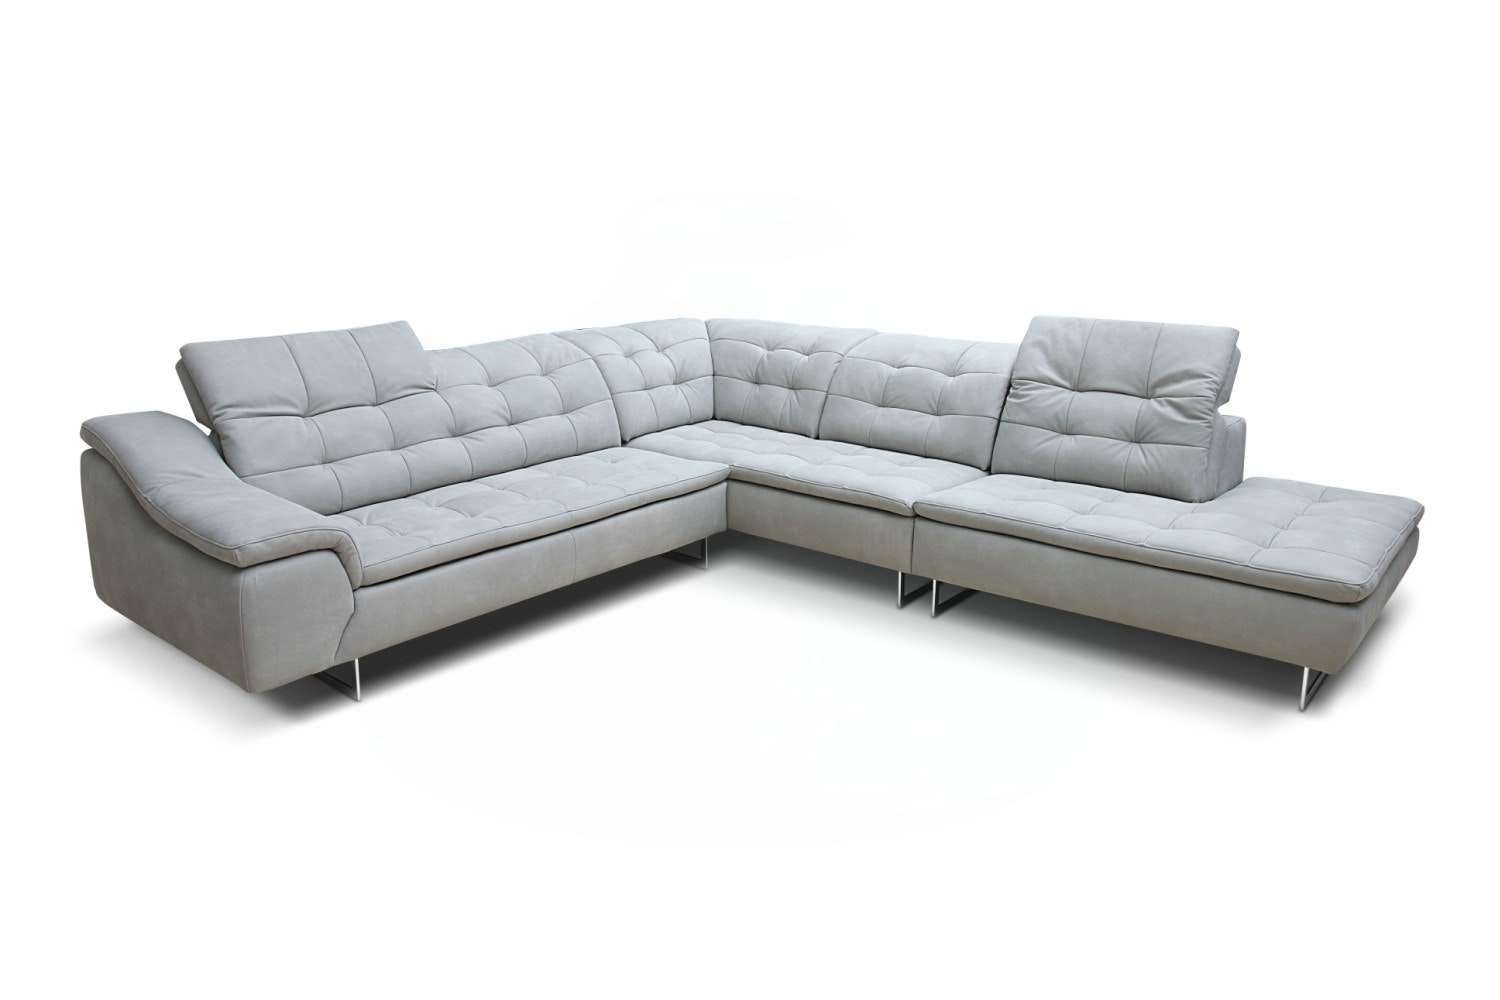 Cloud 3 Seater Maxi Left Arm Facing Chaise